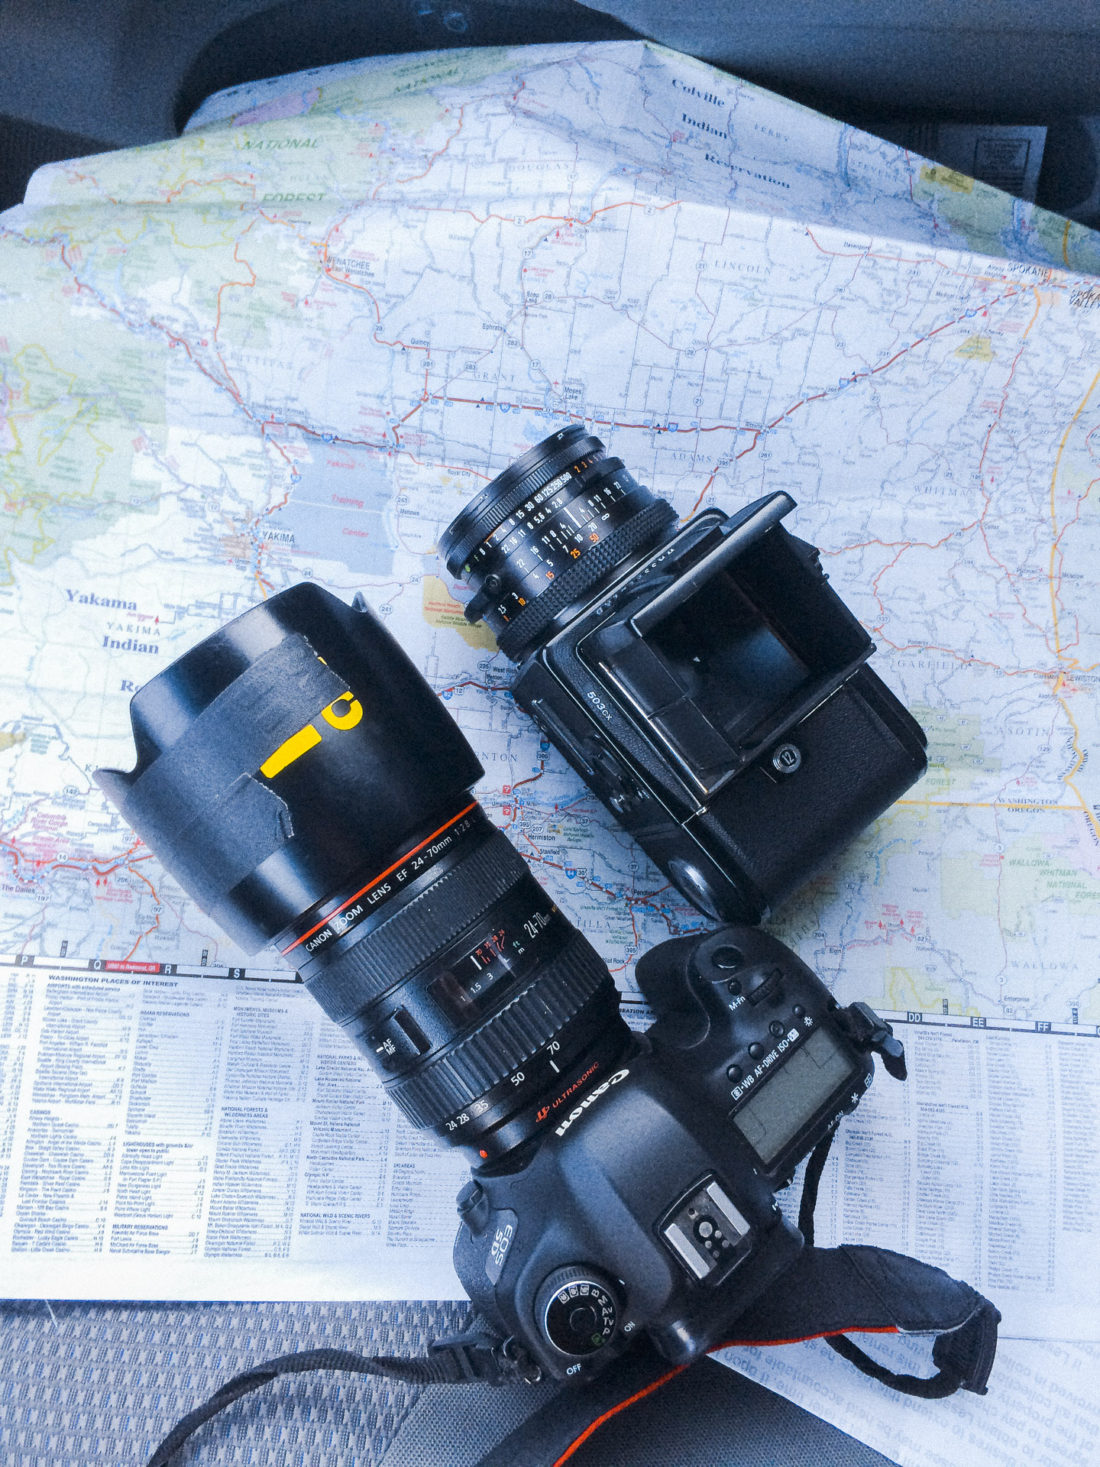 Gear List: Canon 5D MKIII, Hasseblad 503cx, Map.